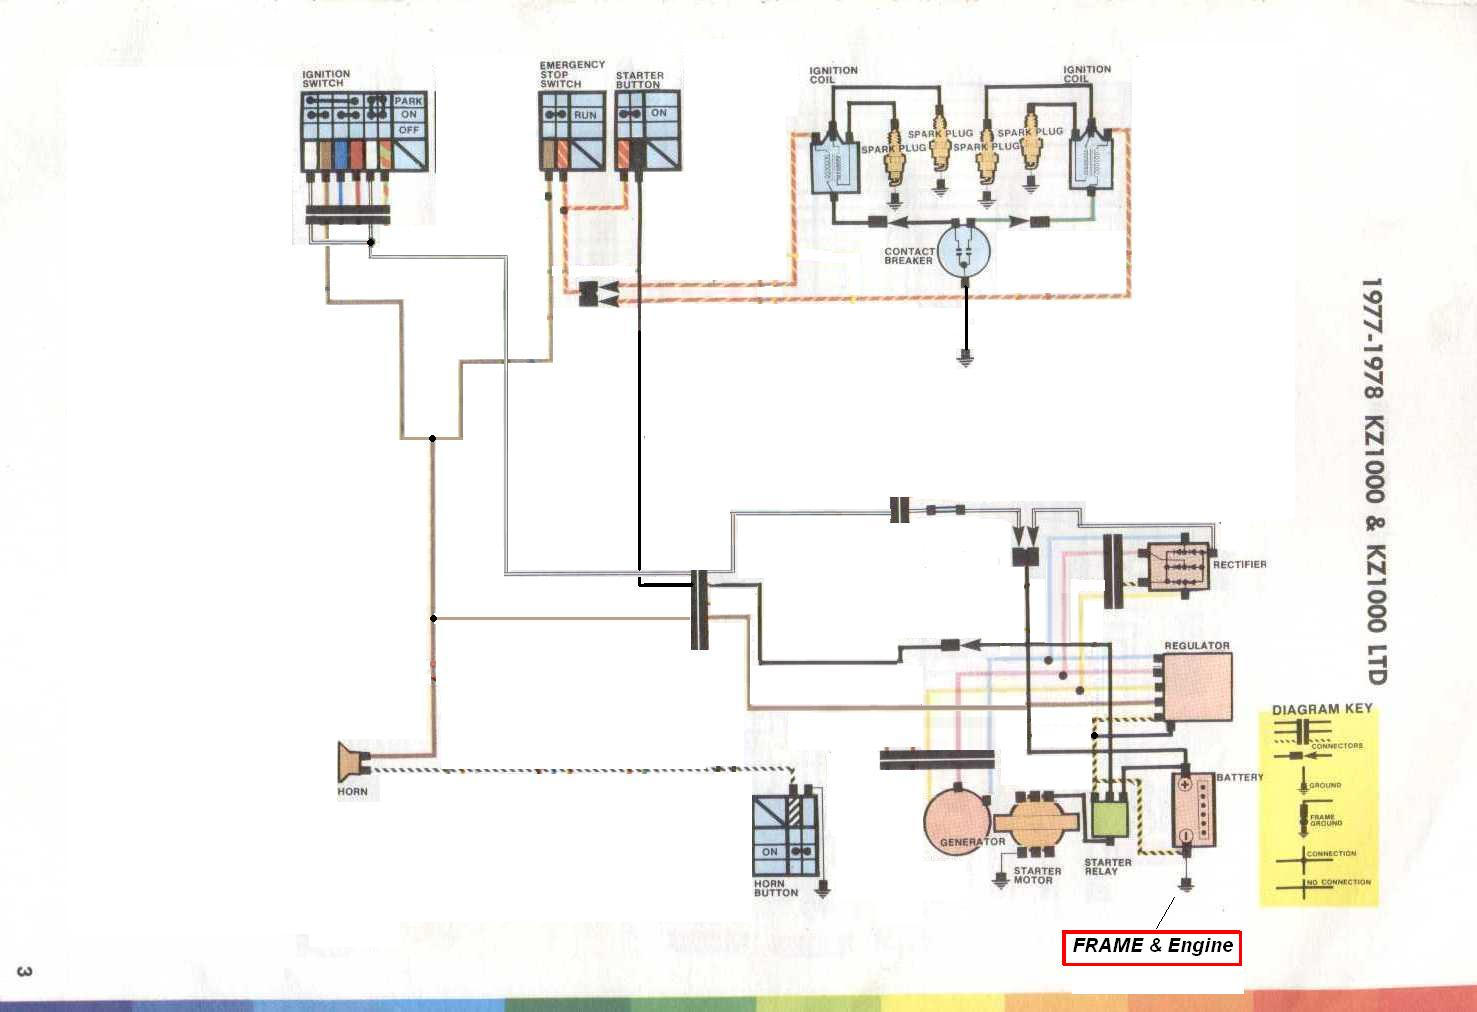 kz1000 wiring diagram basic 1980 kz1000 wiring diagram color dead electrical - kzrider forum - kzrider, kz, z1 & z ... #15